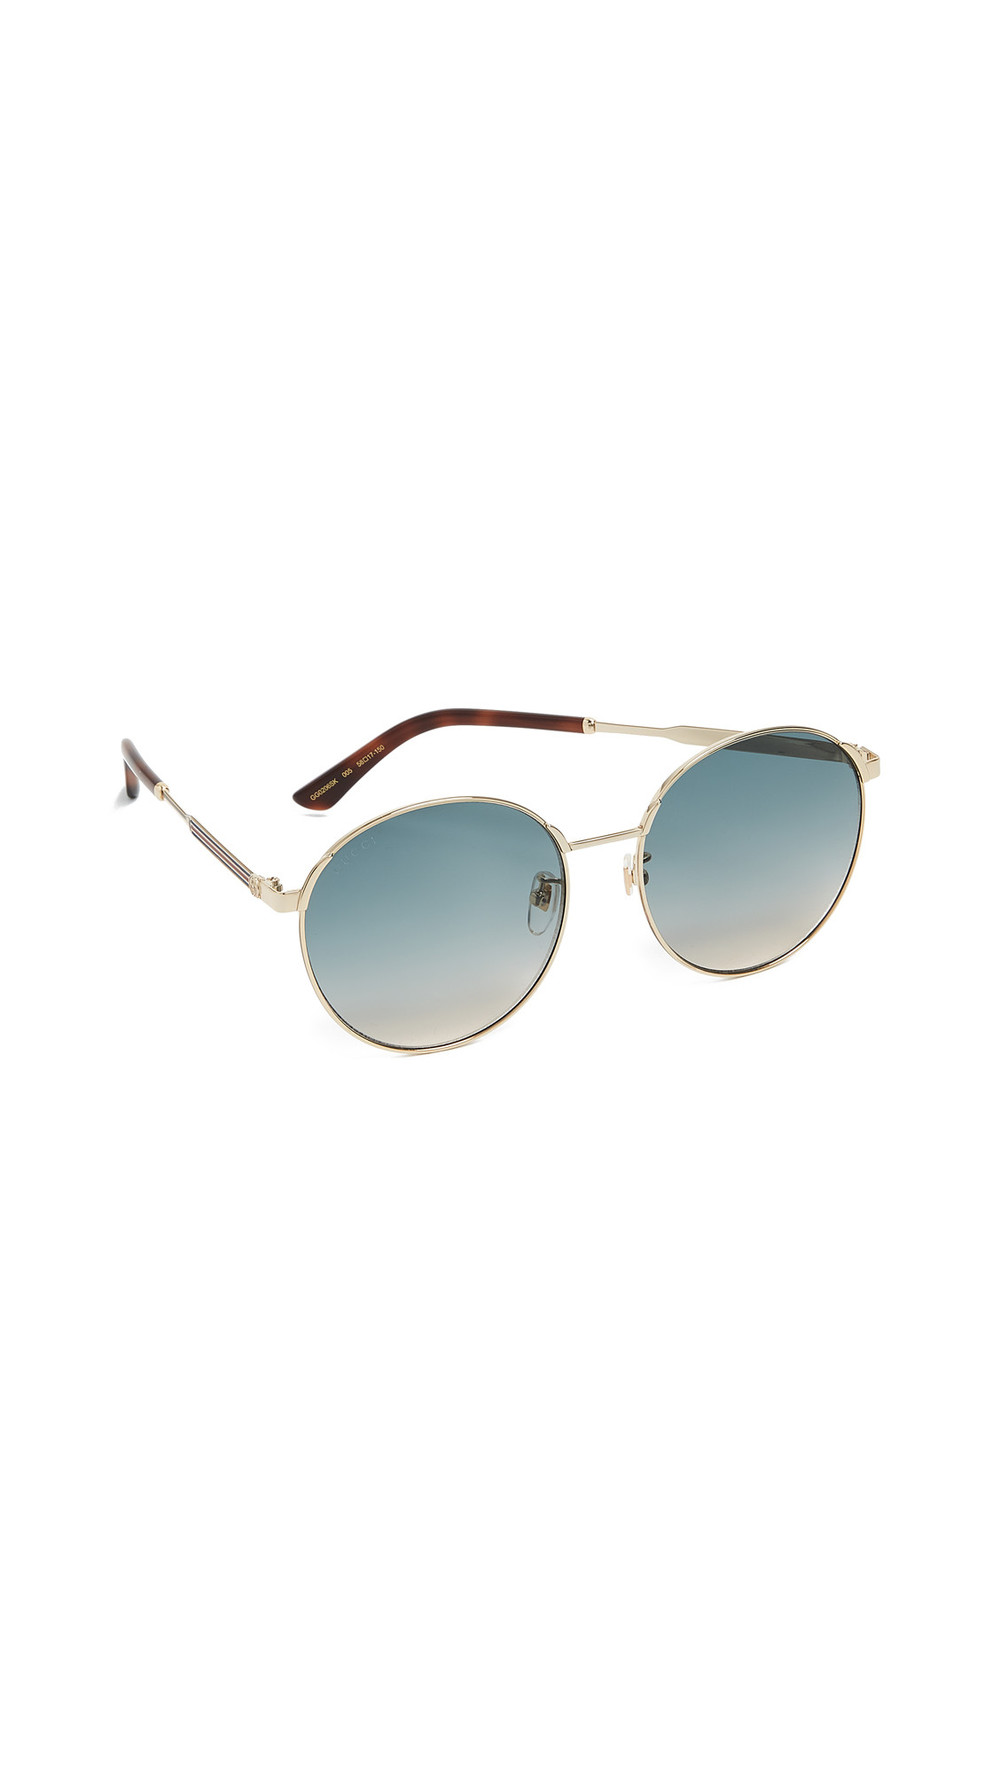 Gucci Sensual Romanticism Round Sunglasses in blue / gold